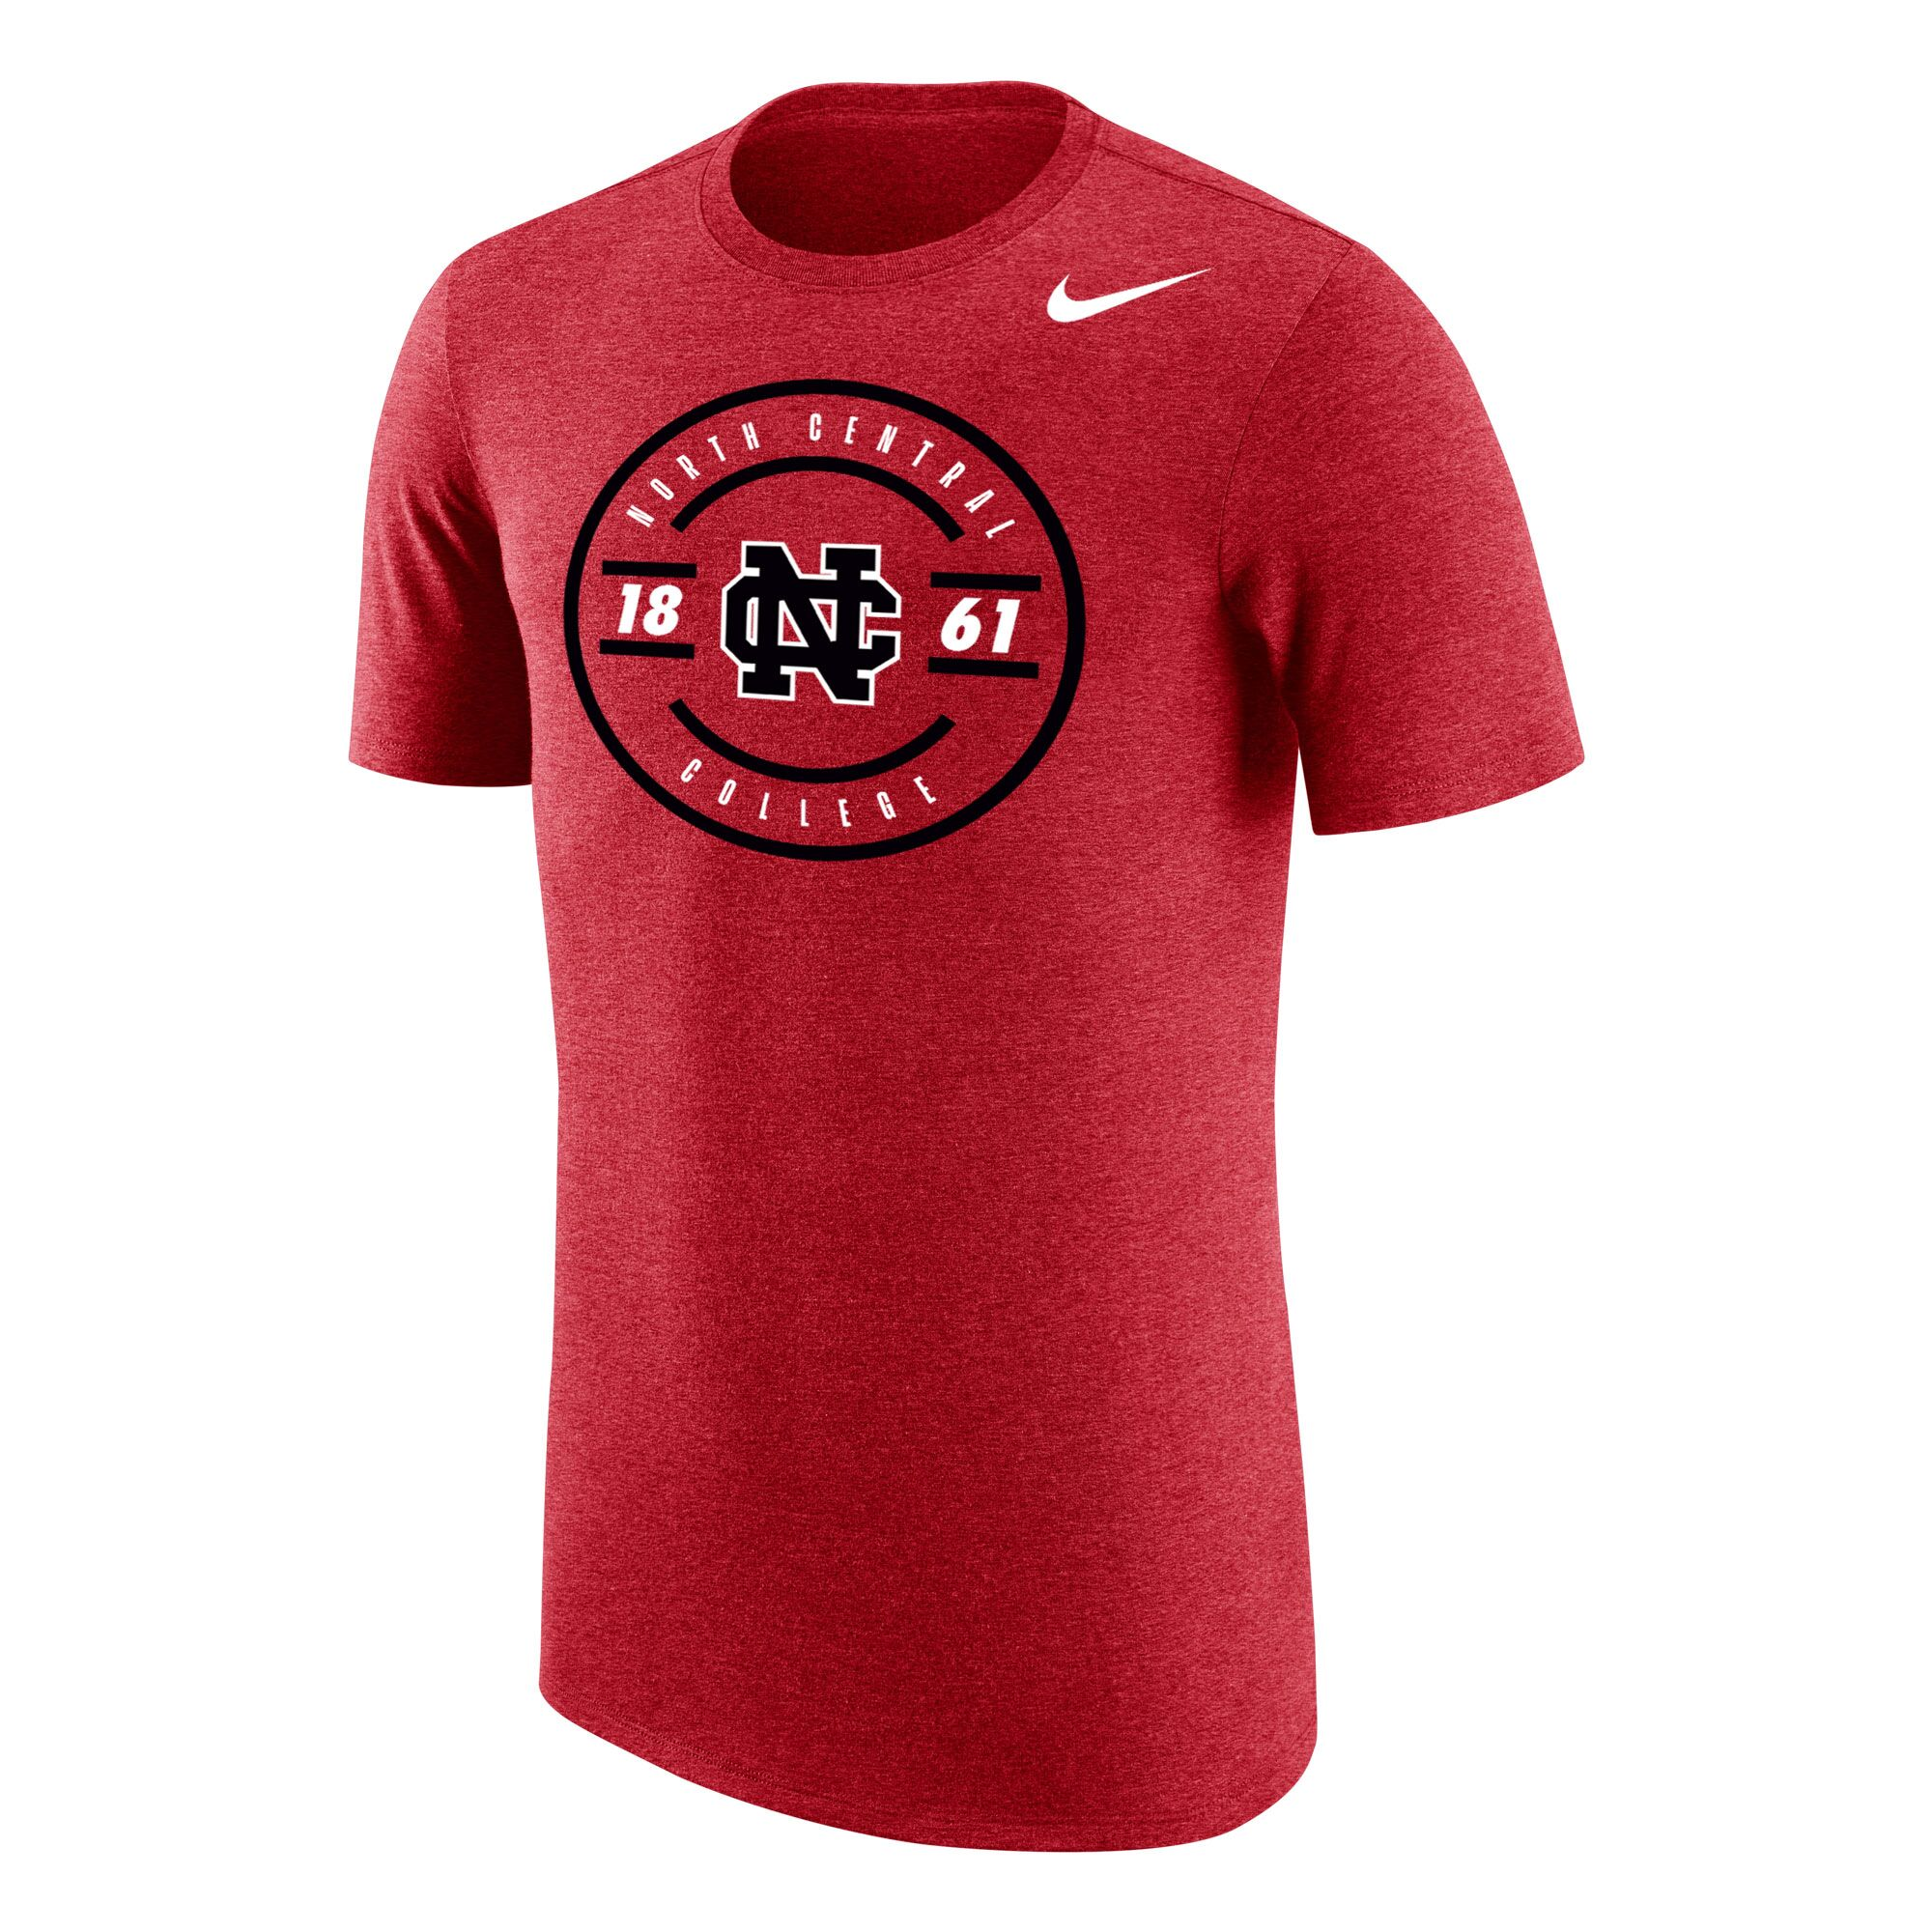 Image for the Nike Tri-Blend Short Sleeve Tee product